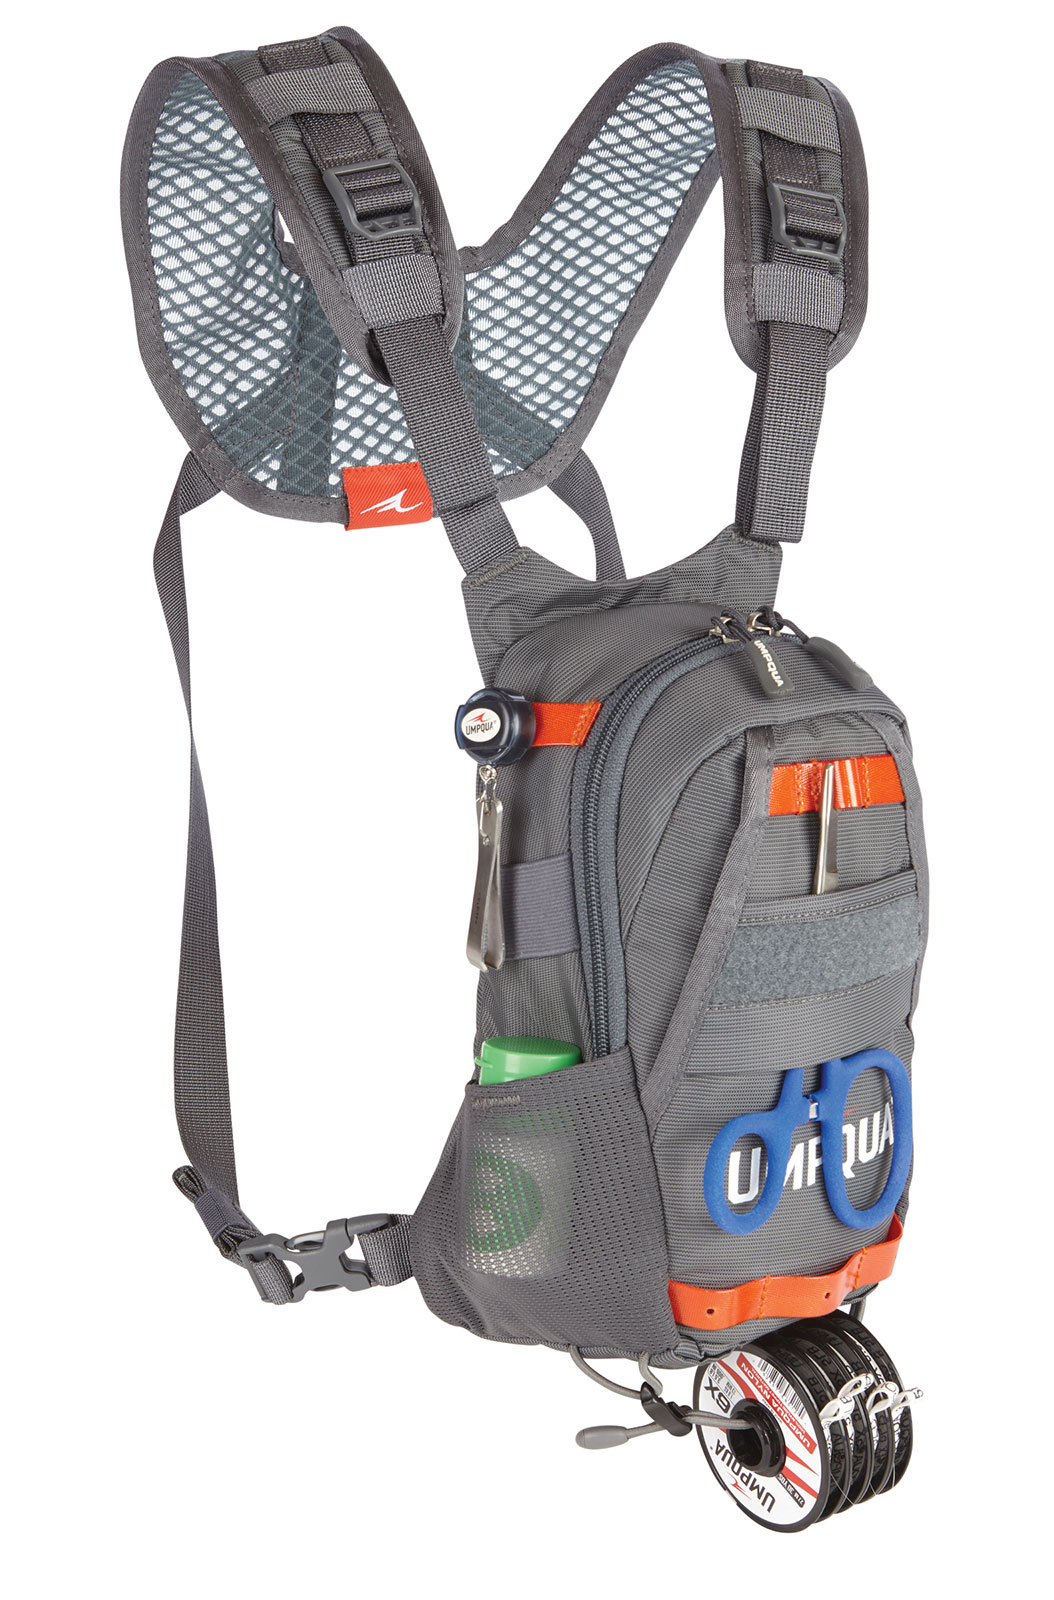 Umpqua rock creek small chest pack for fly fishing bag ebay for Fishing chest pack